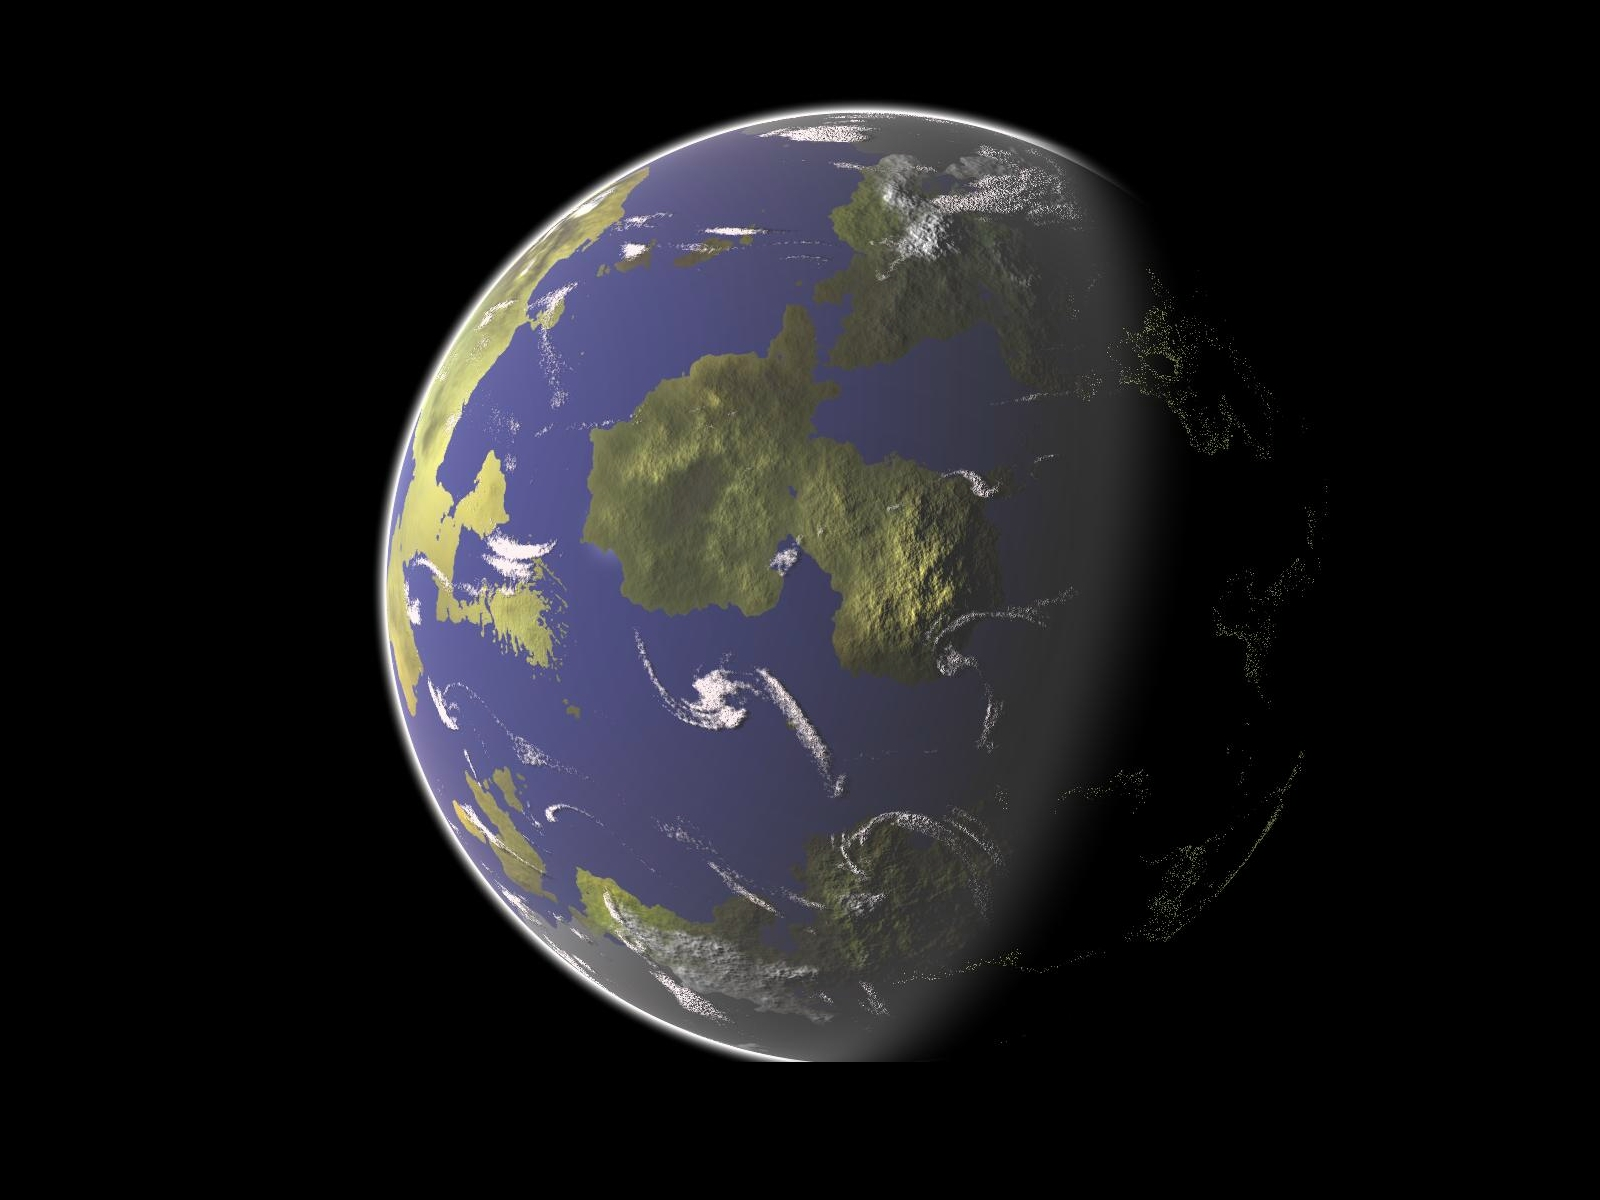 Planet earth - the image of the earth - a picture for your desktop